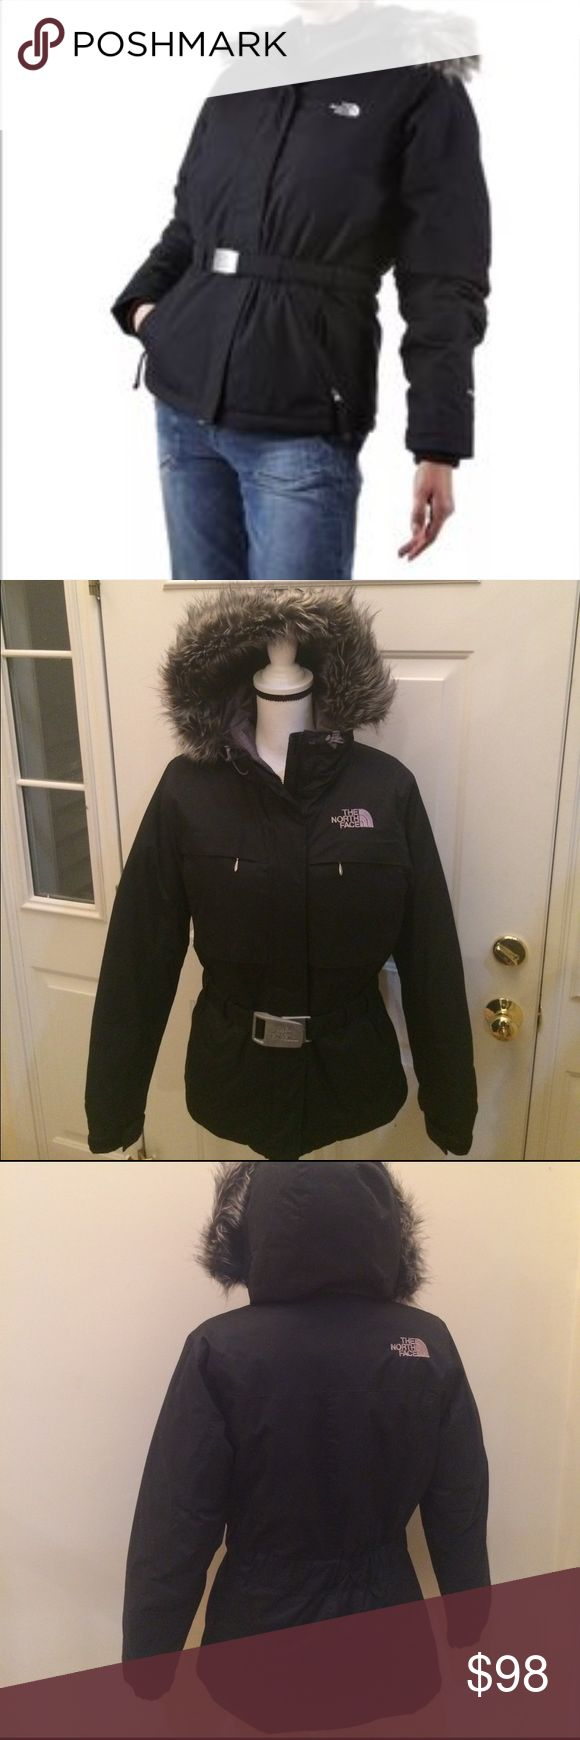 Black North Face Fur Hood w. Belt Parker Size Med Sharp black North Face Hyventa down parker jacket with faux fur hood and belt with silver NF logo buckle size medium. Jacket zips up the front and has 4 pockets on the outside. Inside of jacket is grey lining with 2 interior pockets. Jacket looks really sharp and amazing on and is very comfortable and warm. Jacket has been worn but in great condition with no stains or damage. Love this jacket so much and received so many compliments... Great…